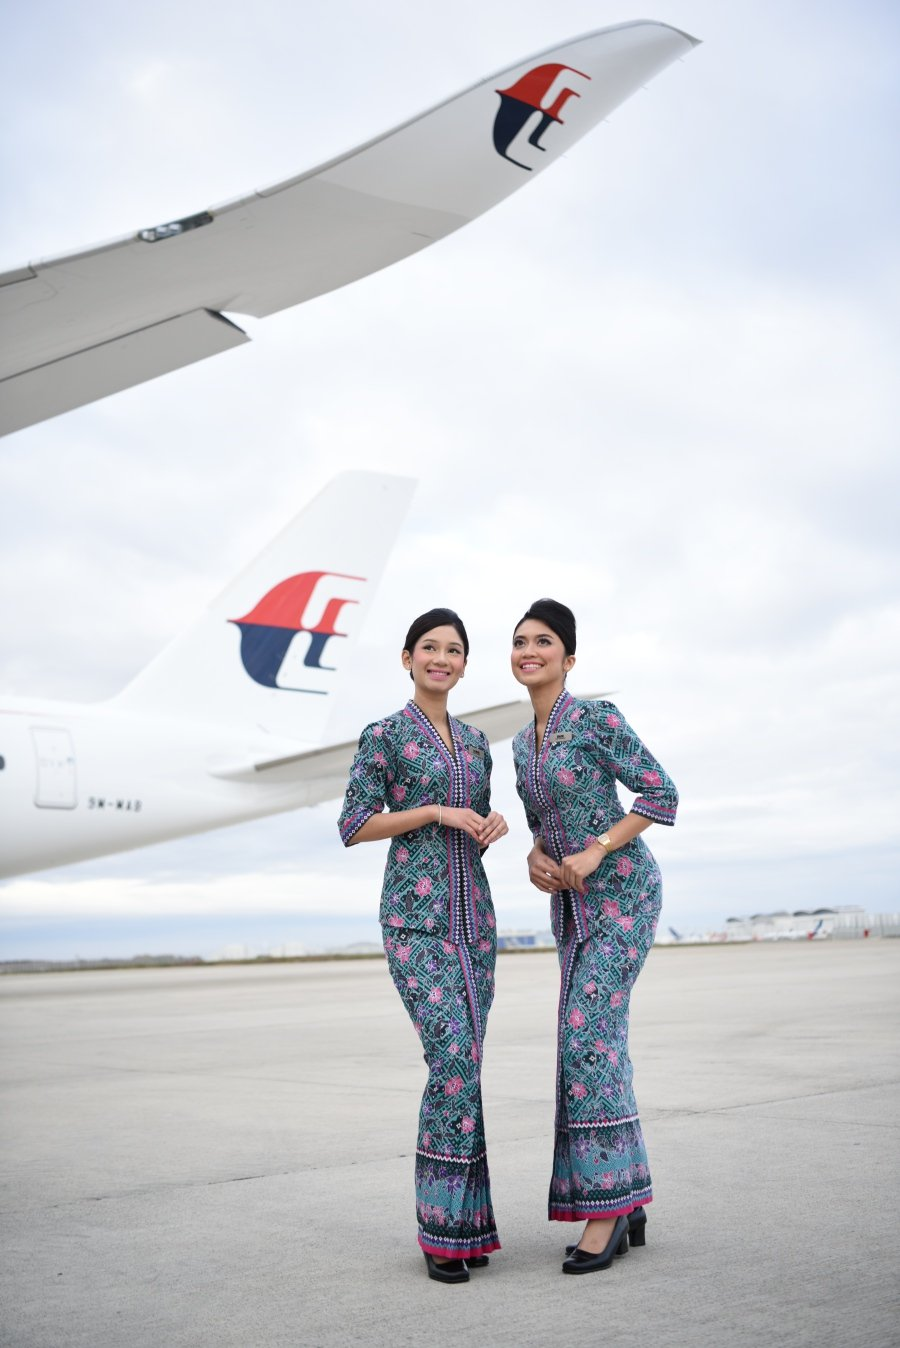 MAS Cabin Crew Prove Their Mettle When The Going Gets Tough